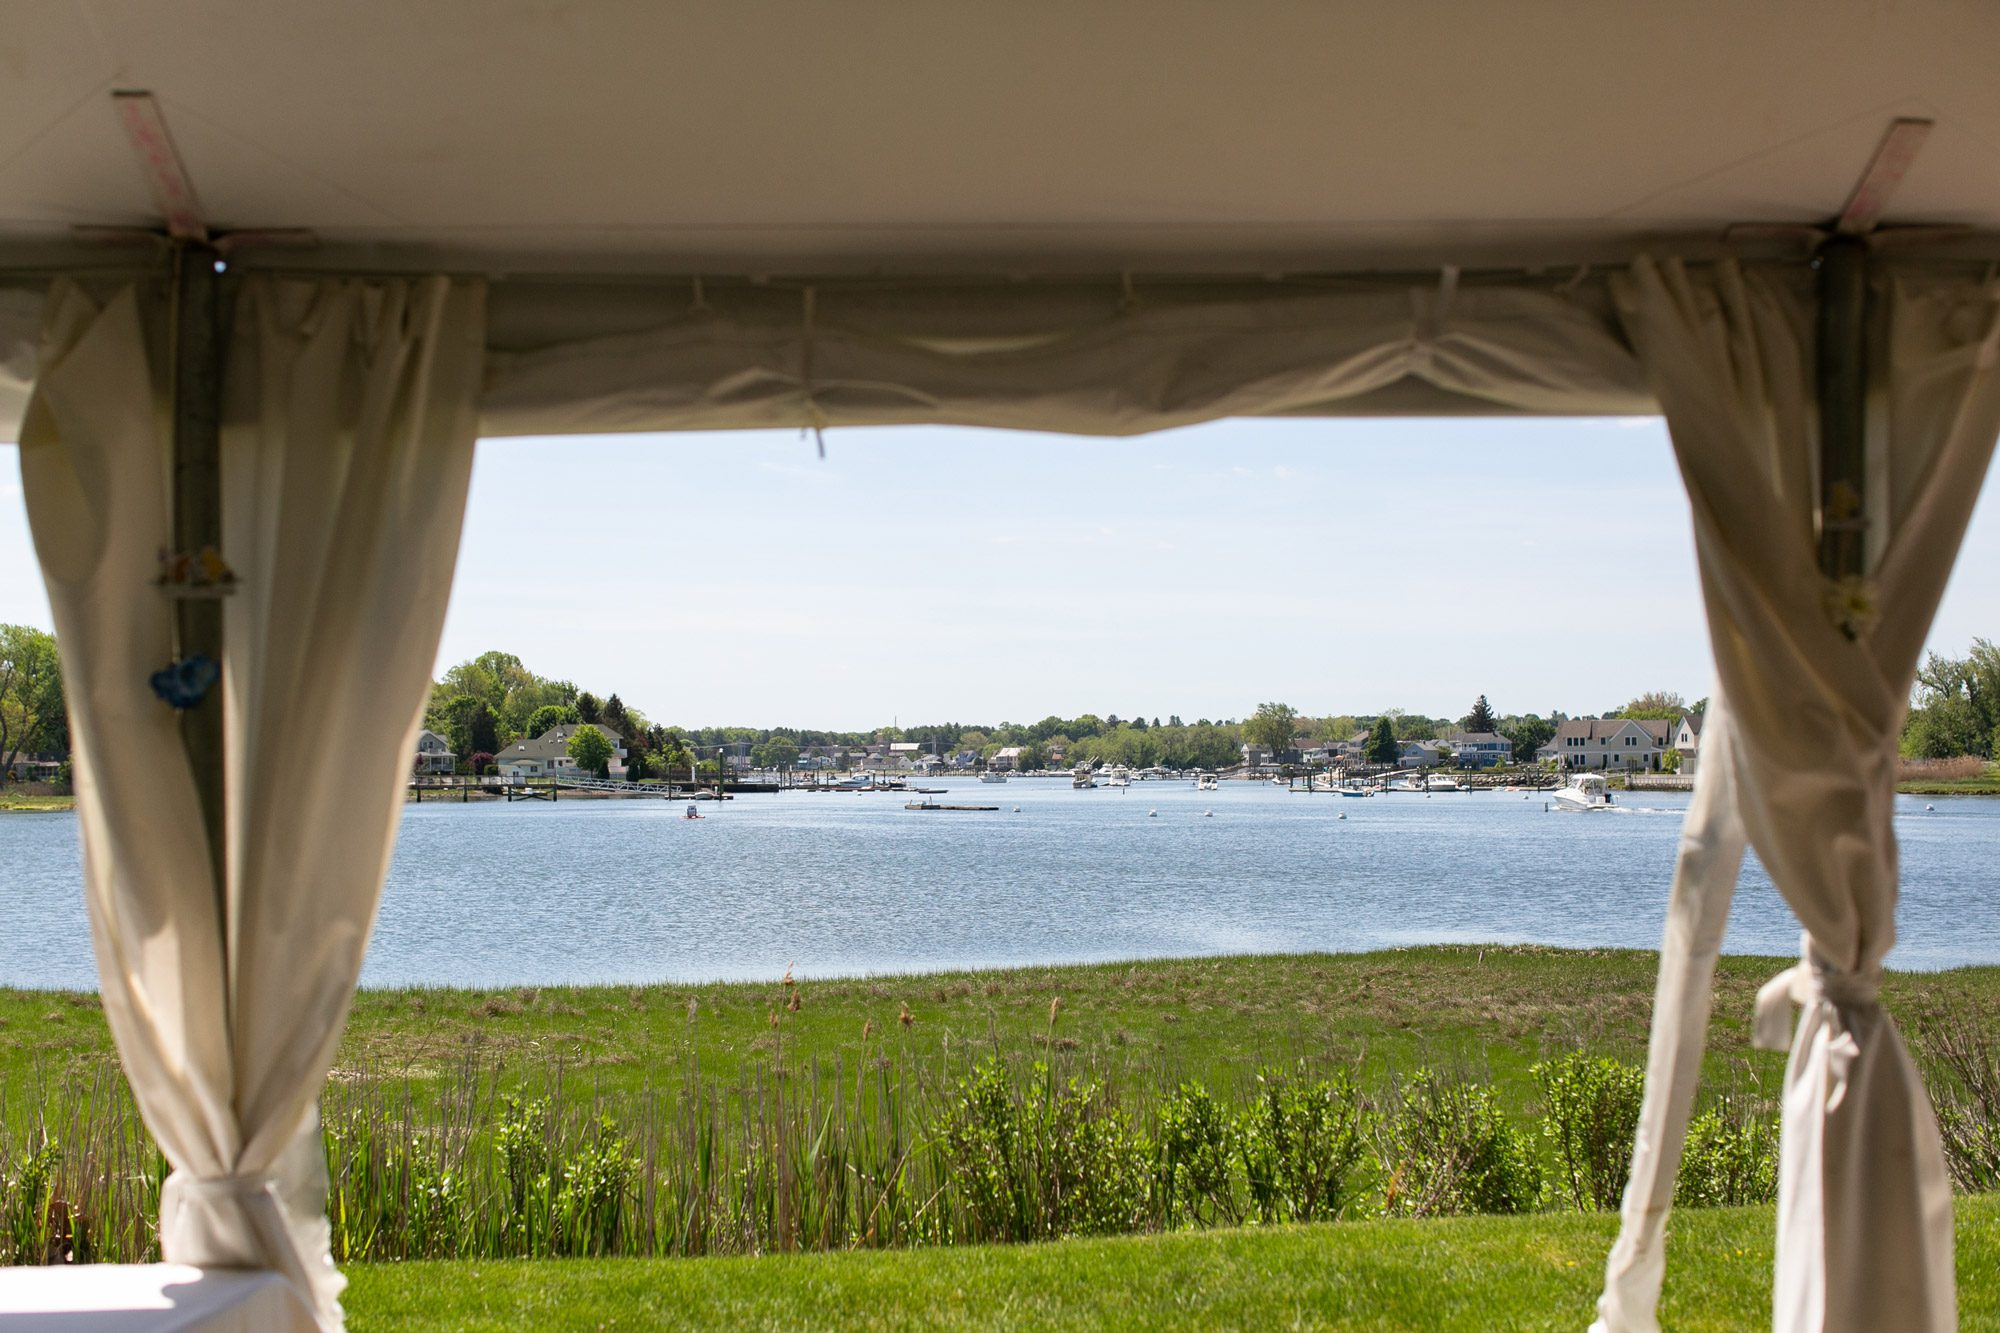 The view from The Tent Pavilion at Danversport